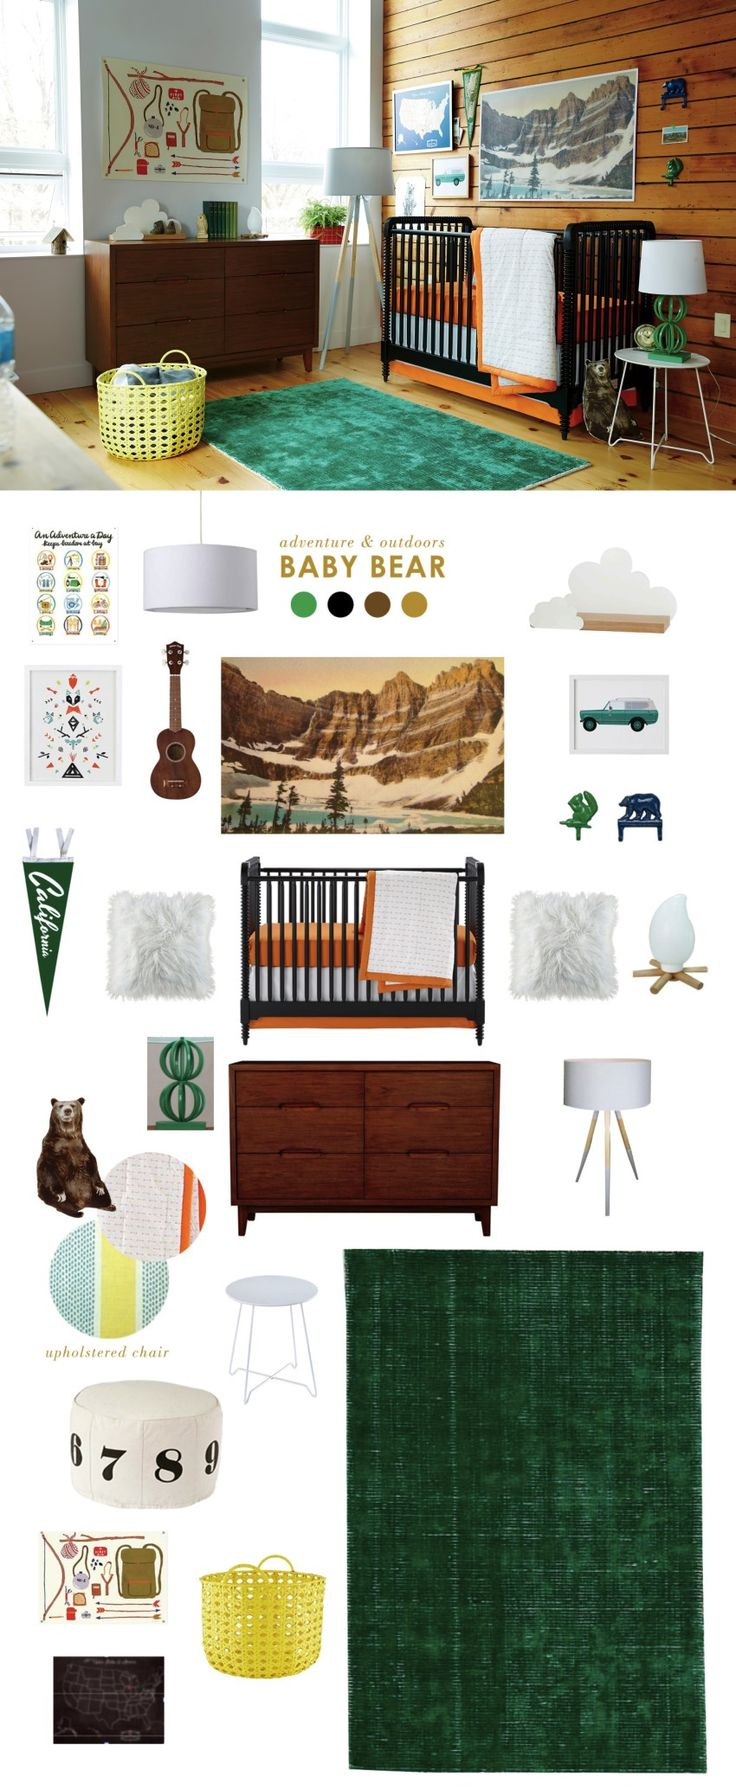 Baby Bear nursery - adventure and outdoors themed! This design grows with baby.